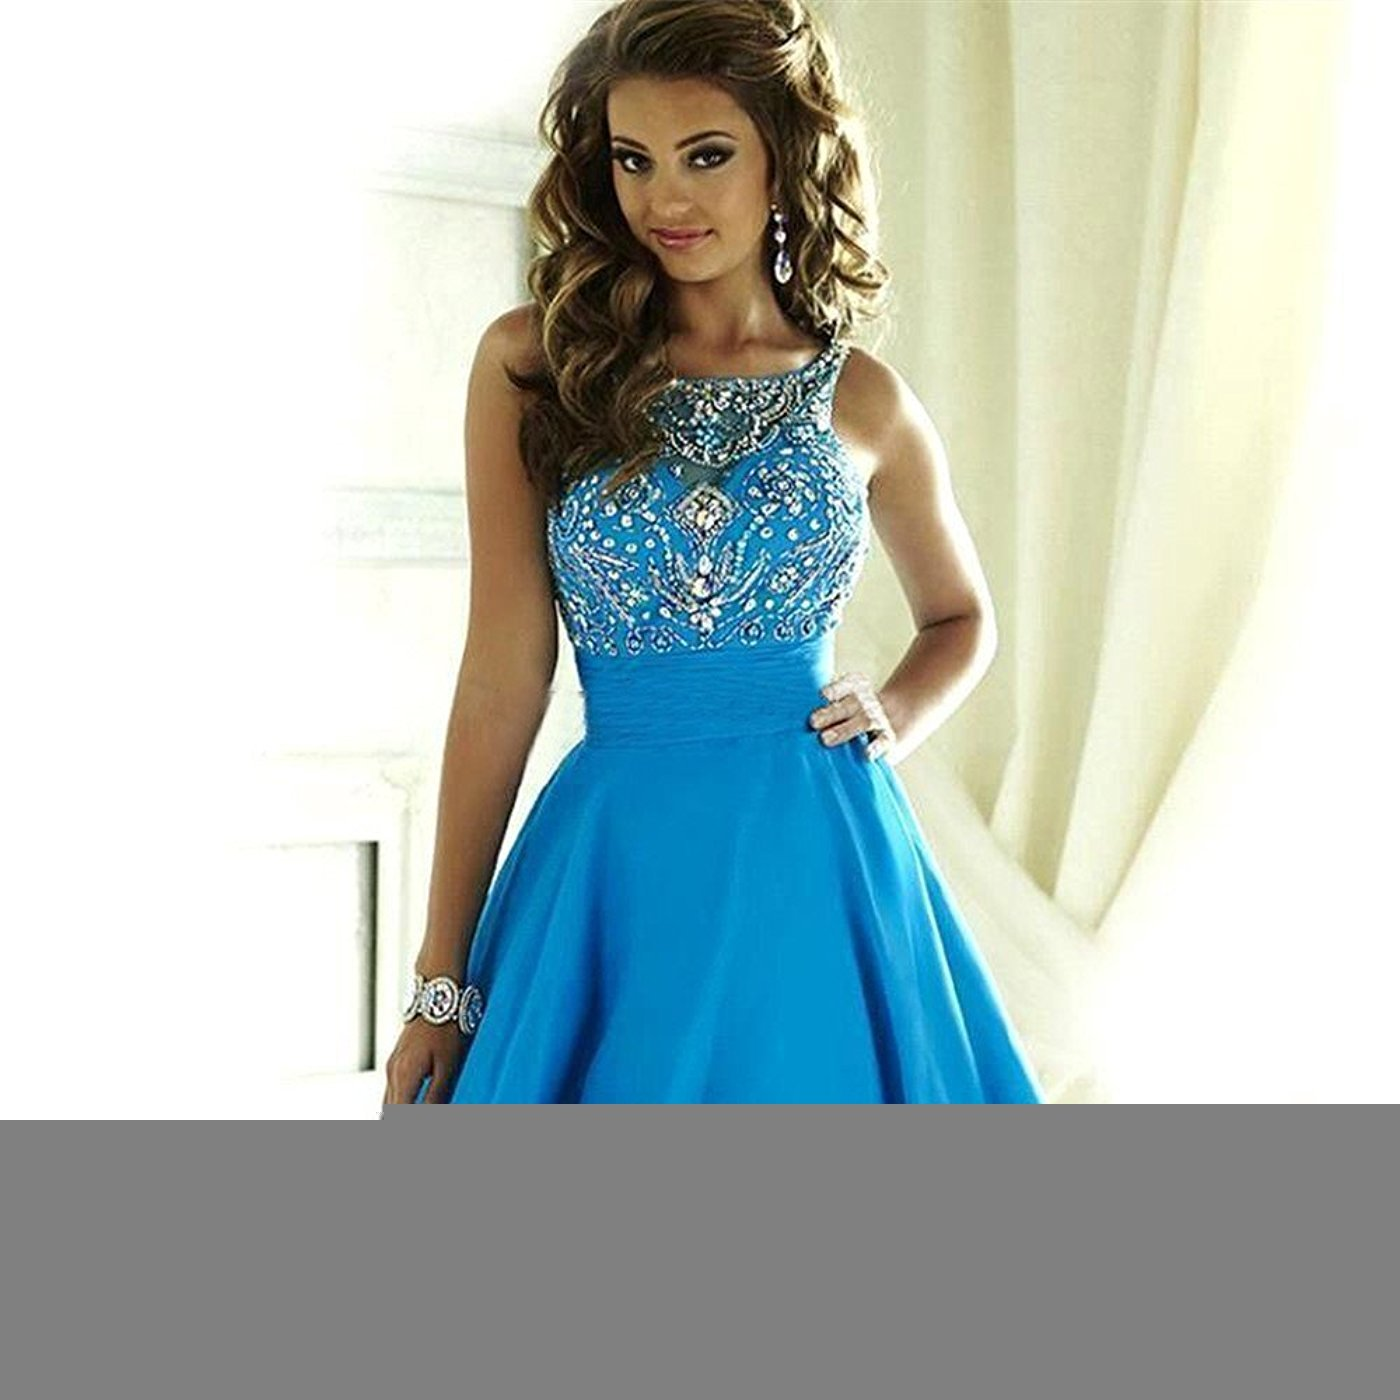 06111cc6baf MEILISAY Meilishuo Women s Sparkly Beading Prom Dresses Short Homecoming  Dresses 2018 for Juniors LF-146   Dresses   Clothing